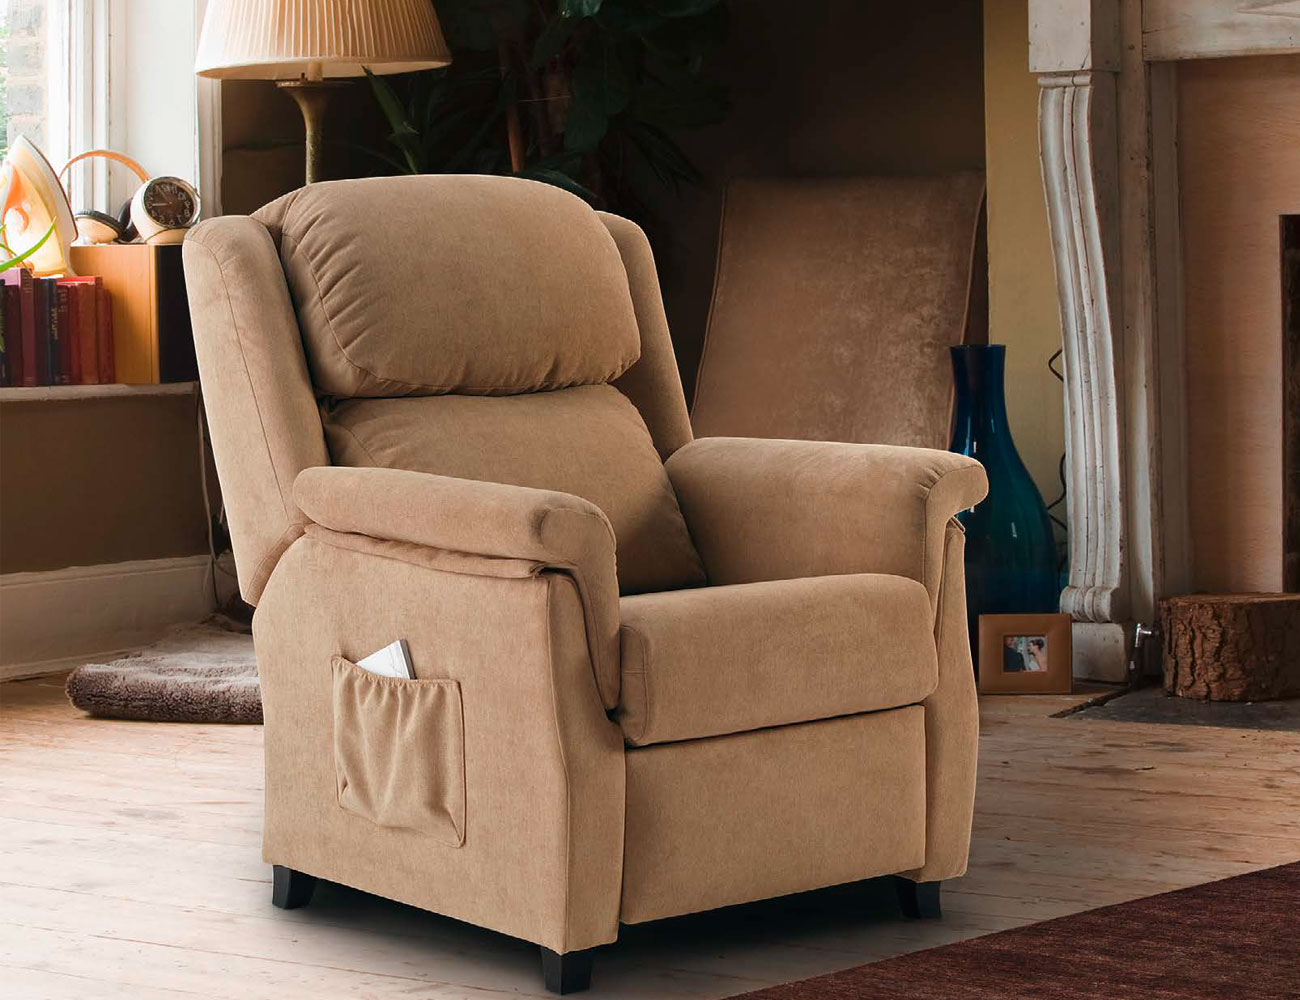 Sillon relax manual bianca 16